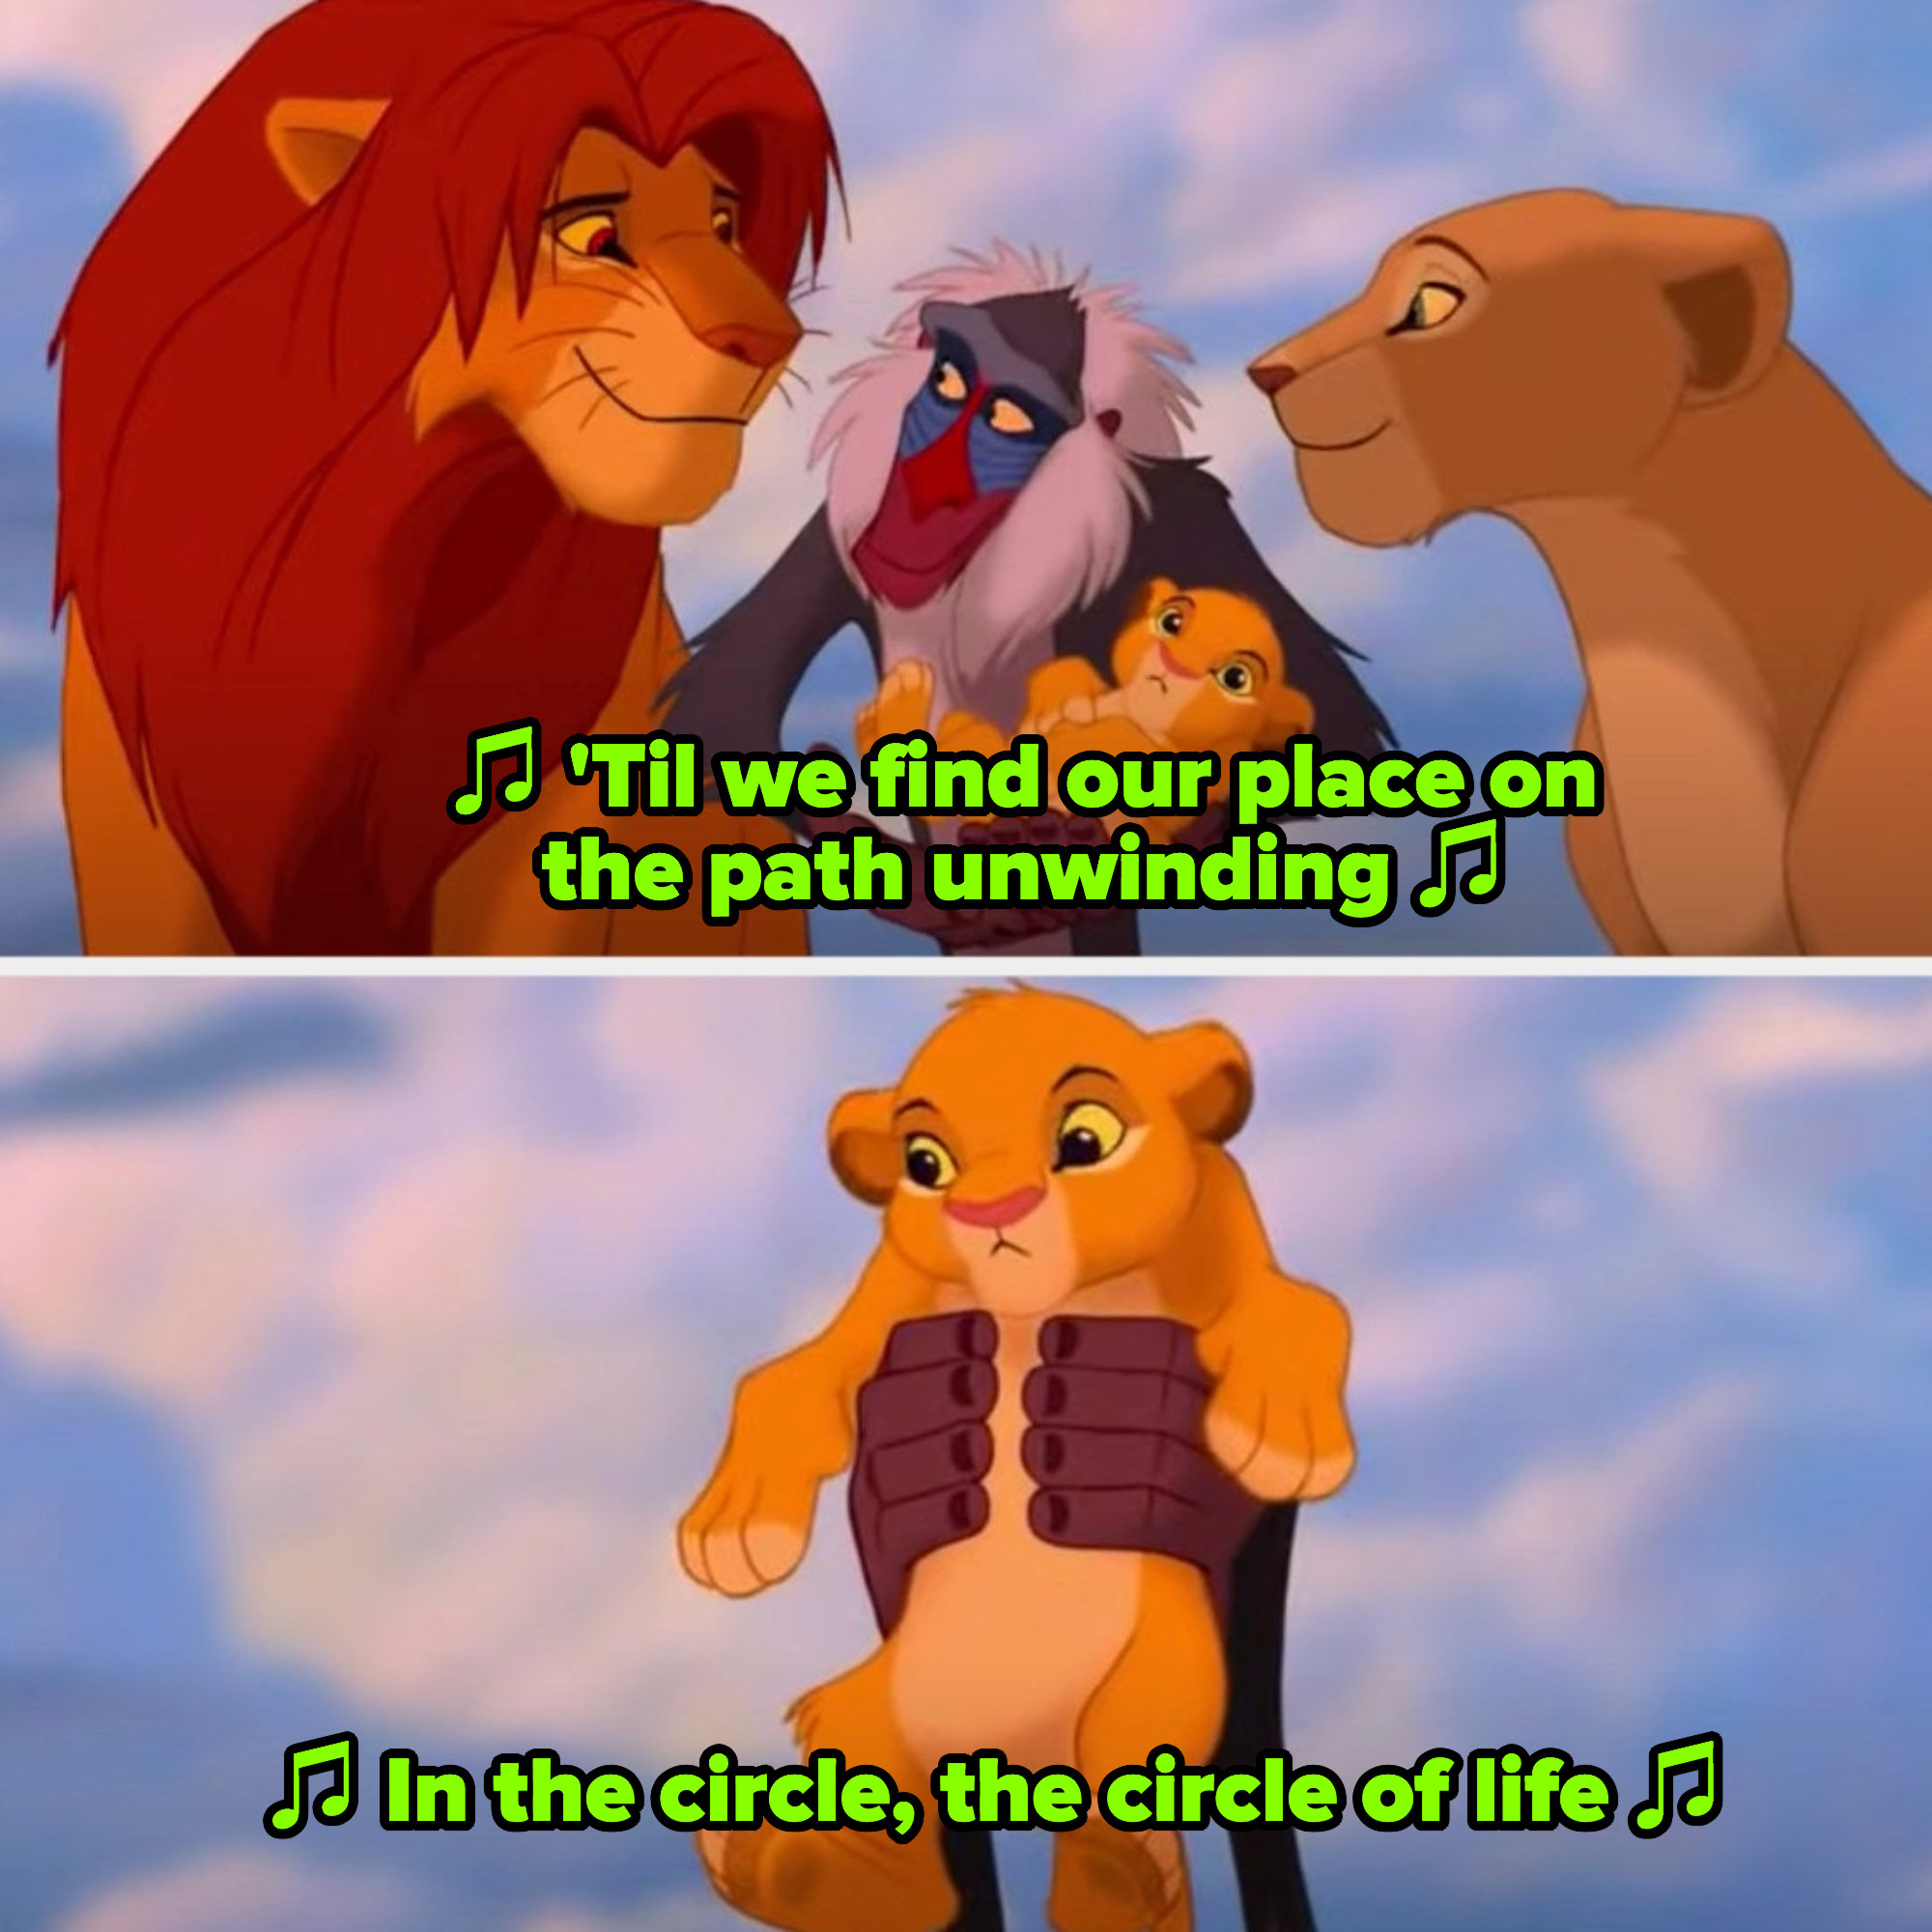 """The ending of """"The Lion King,"""" with Simba taking over as king and introducing his son to the kingdom"""